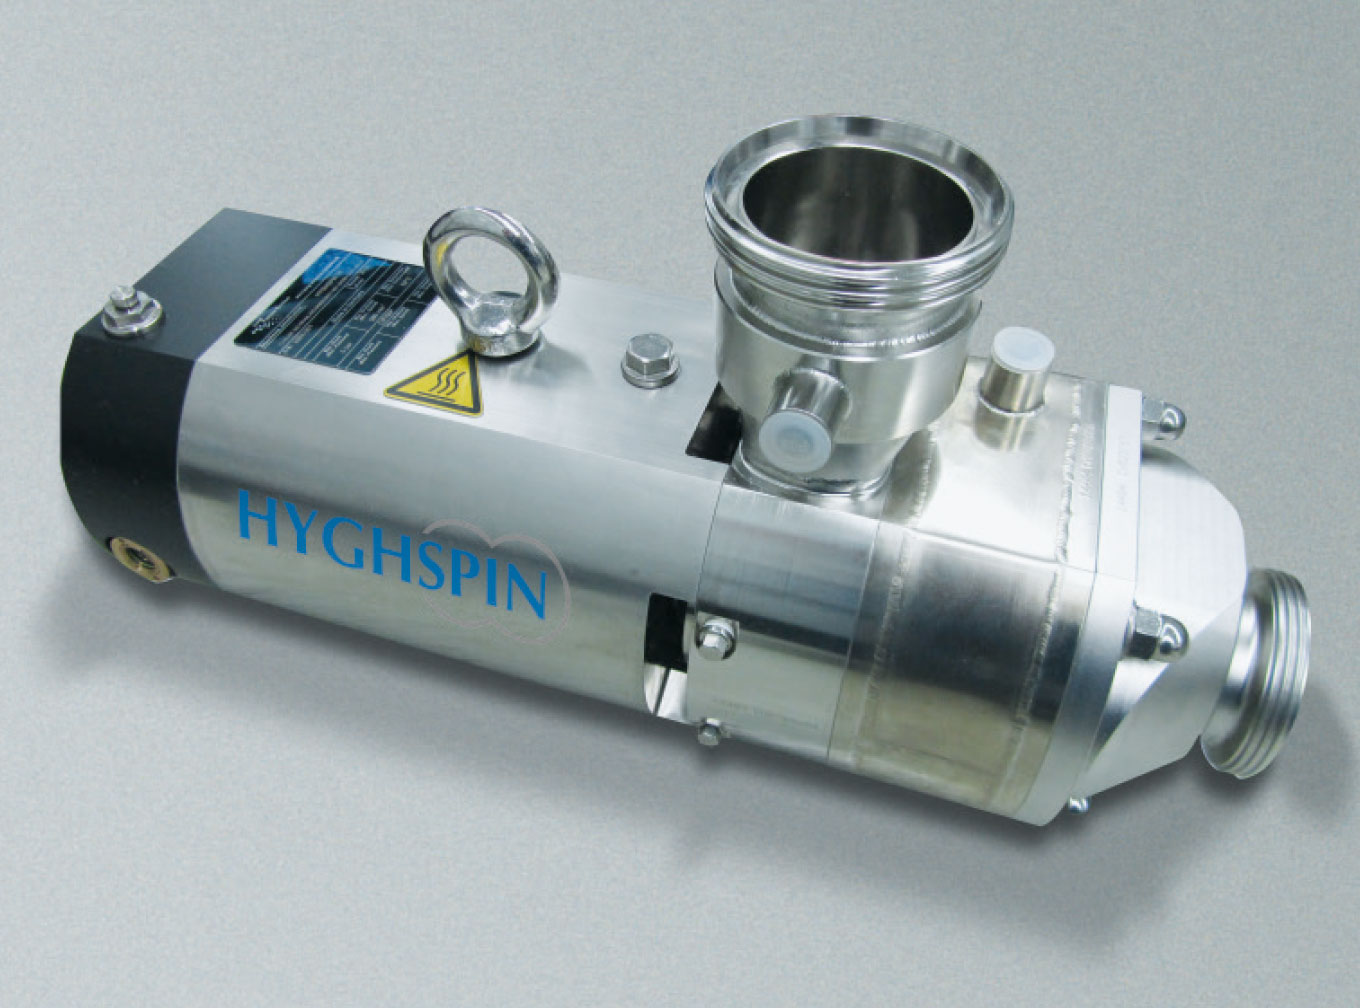 HYGHSPIN Engineered with heated housing and outlet